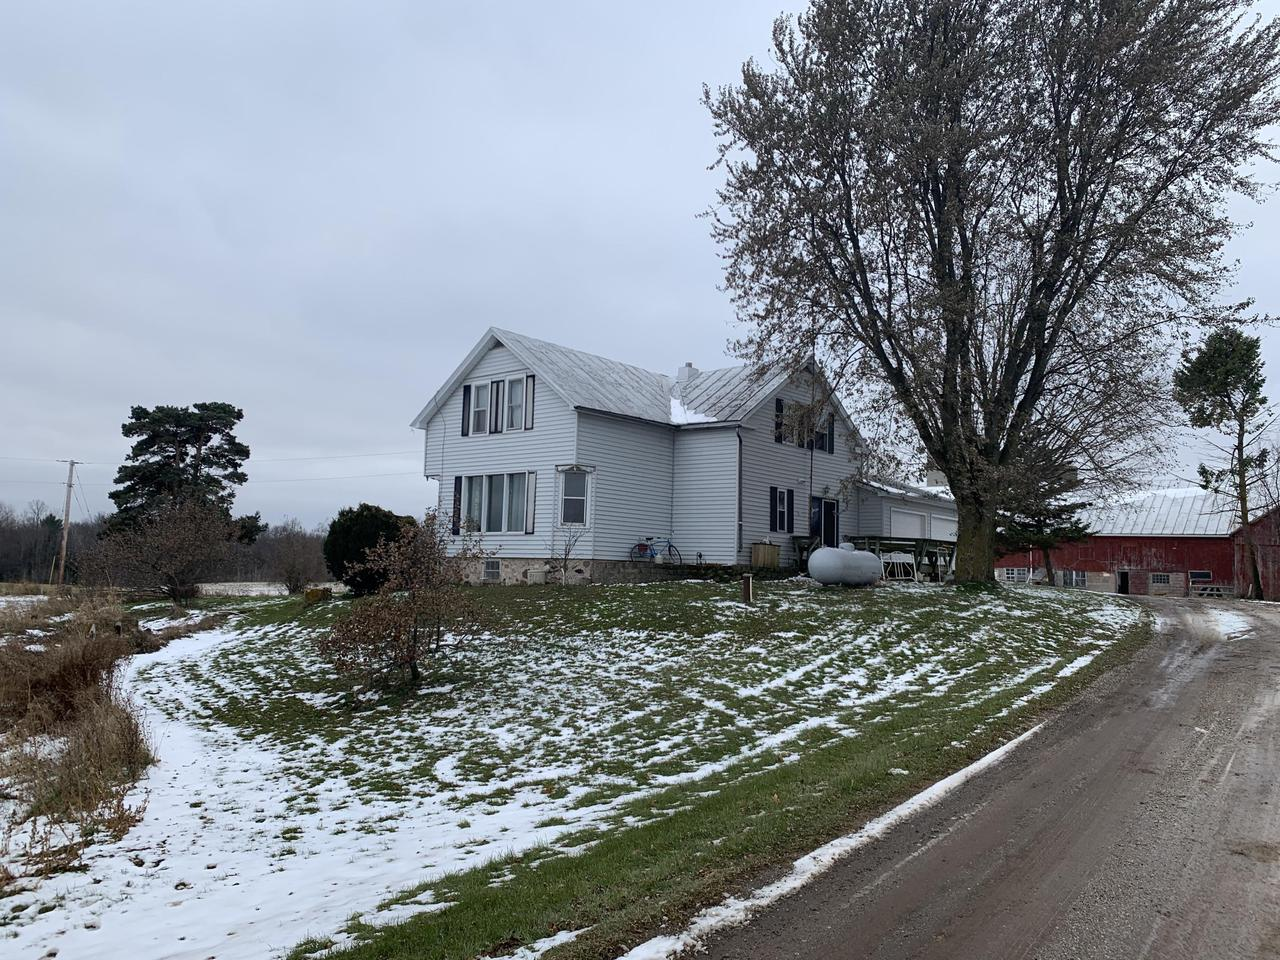 Rural Property in Valders School District with storage. The 4 bedroom farm house, with 2 full bathrooms and potential for a 5th bedroom also has a laundry room on the main floor. Property is vinyl sided, has a metal roof on majority of the home, an Attached two car garage, with two garage door openers and access to the laundry room from the garage. Per the seller the property includes a 110 ft x 40 ft barn, 4 silos, 2 smaller barns, a cement -block 40 x 26 out building and a 80 x 48 pole shed. (Parcel will be surveyed for about 5 acres, currently 38.17 acres)